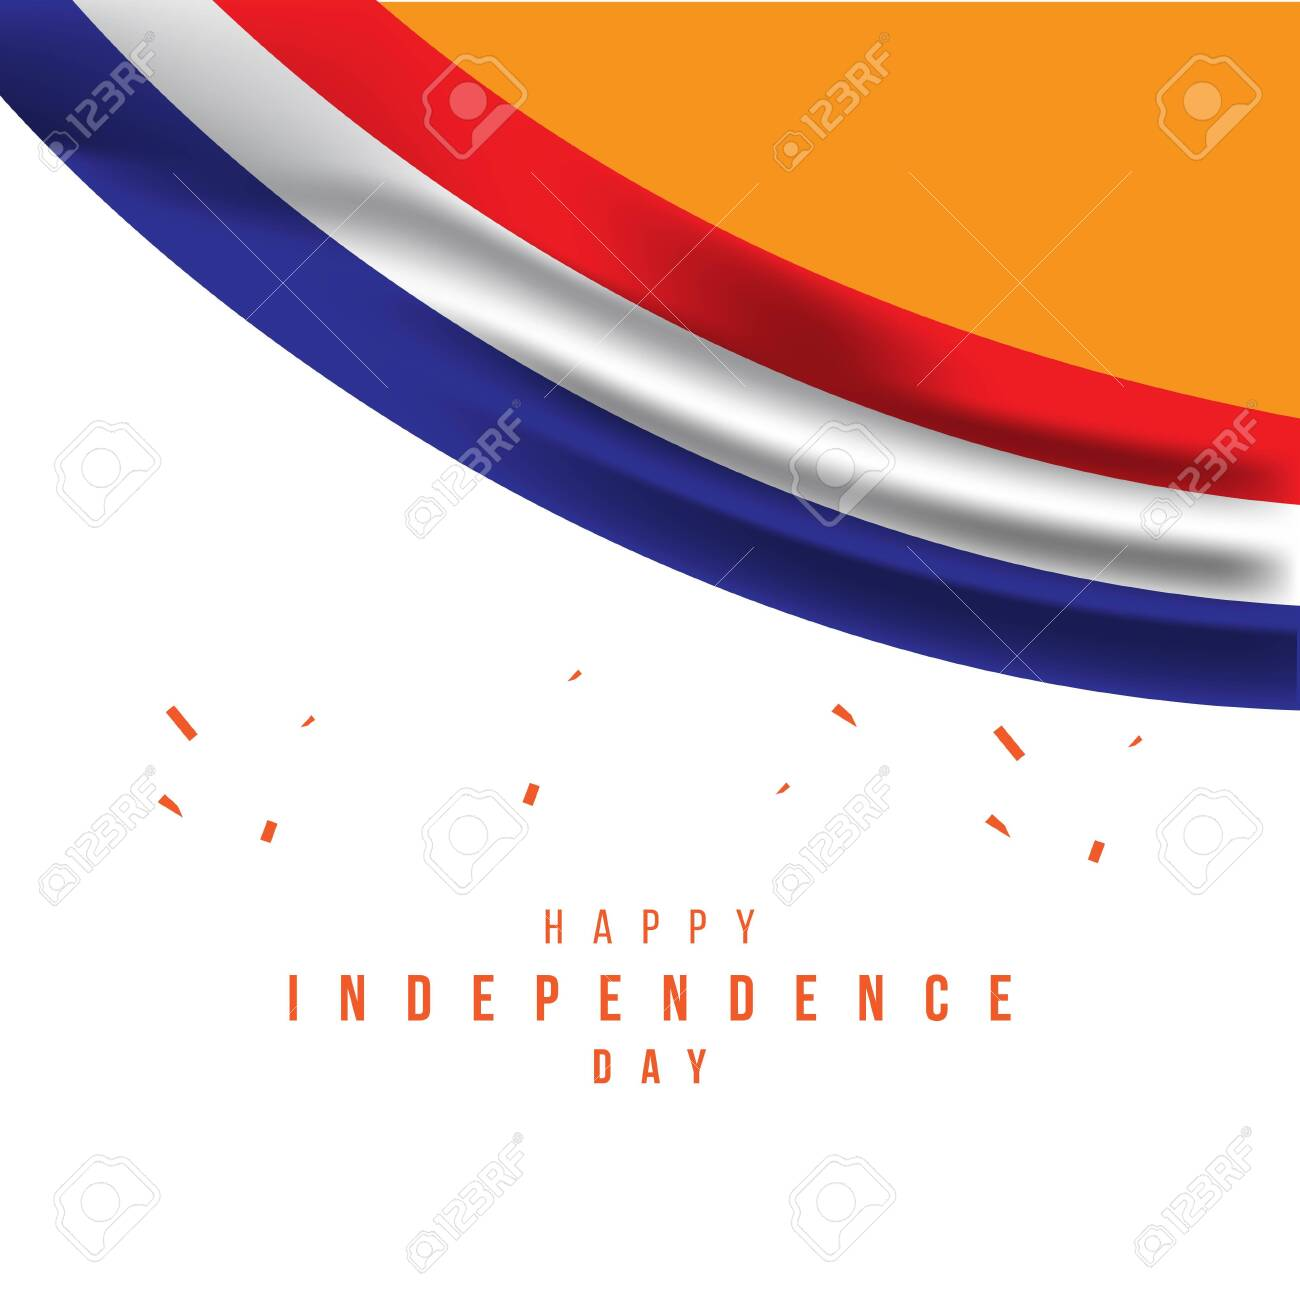 Happy Netherlands Independence Day Vector Template Design Illustration - 138363081